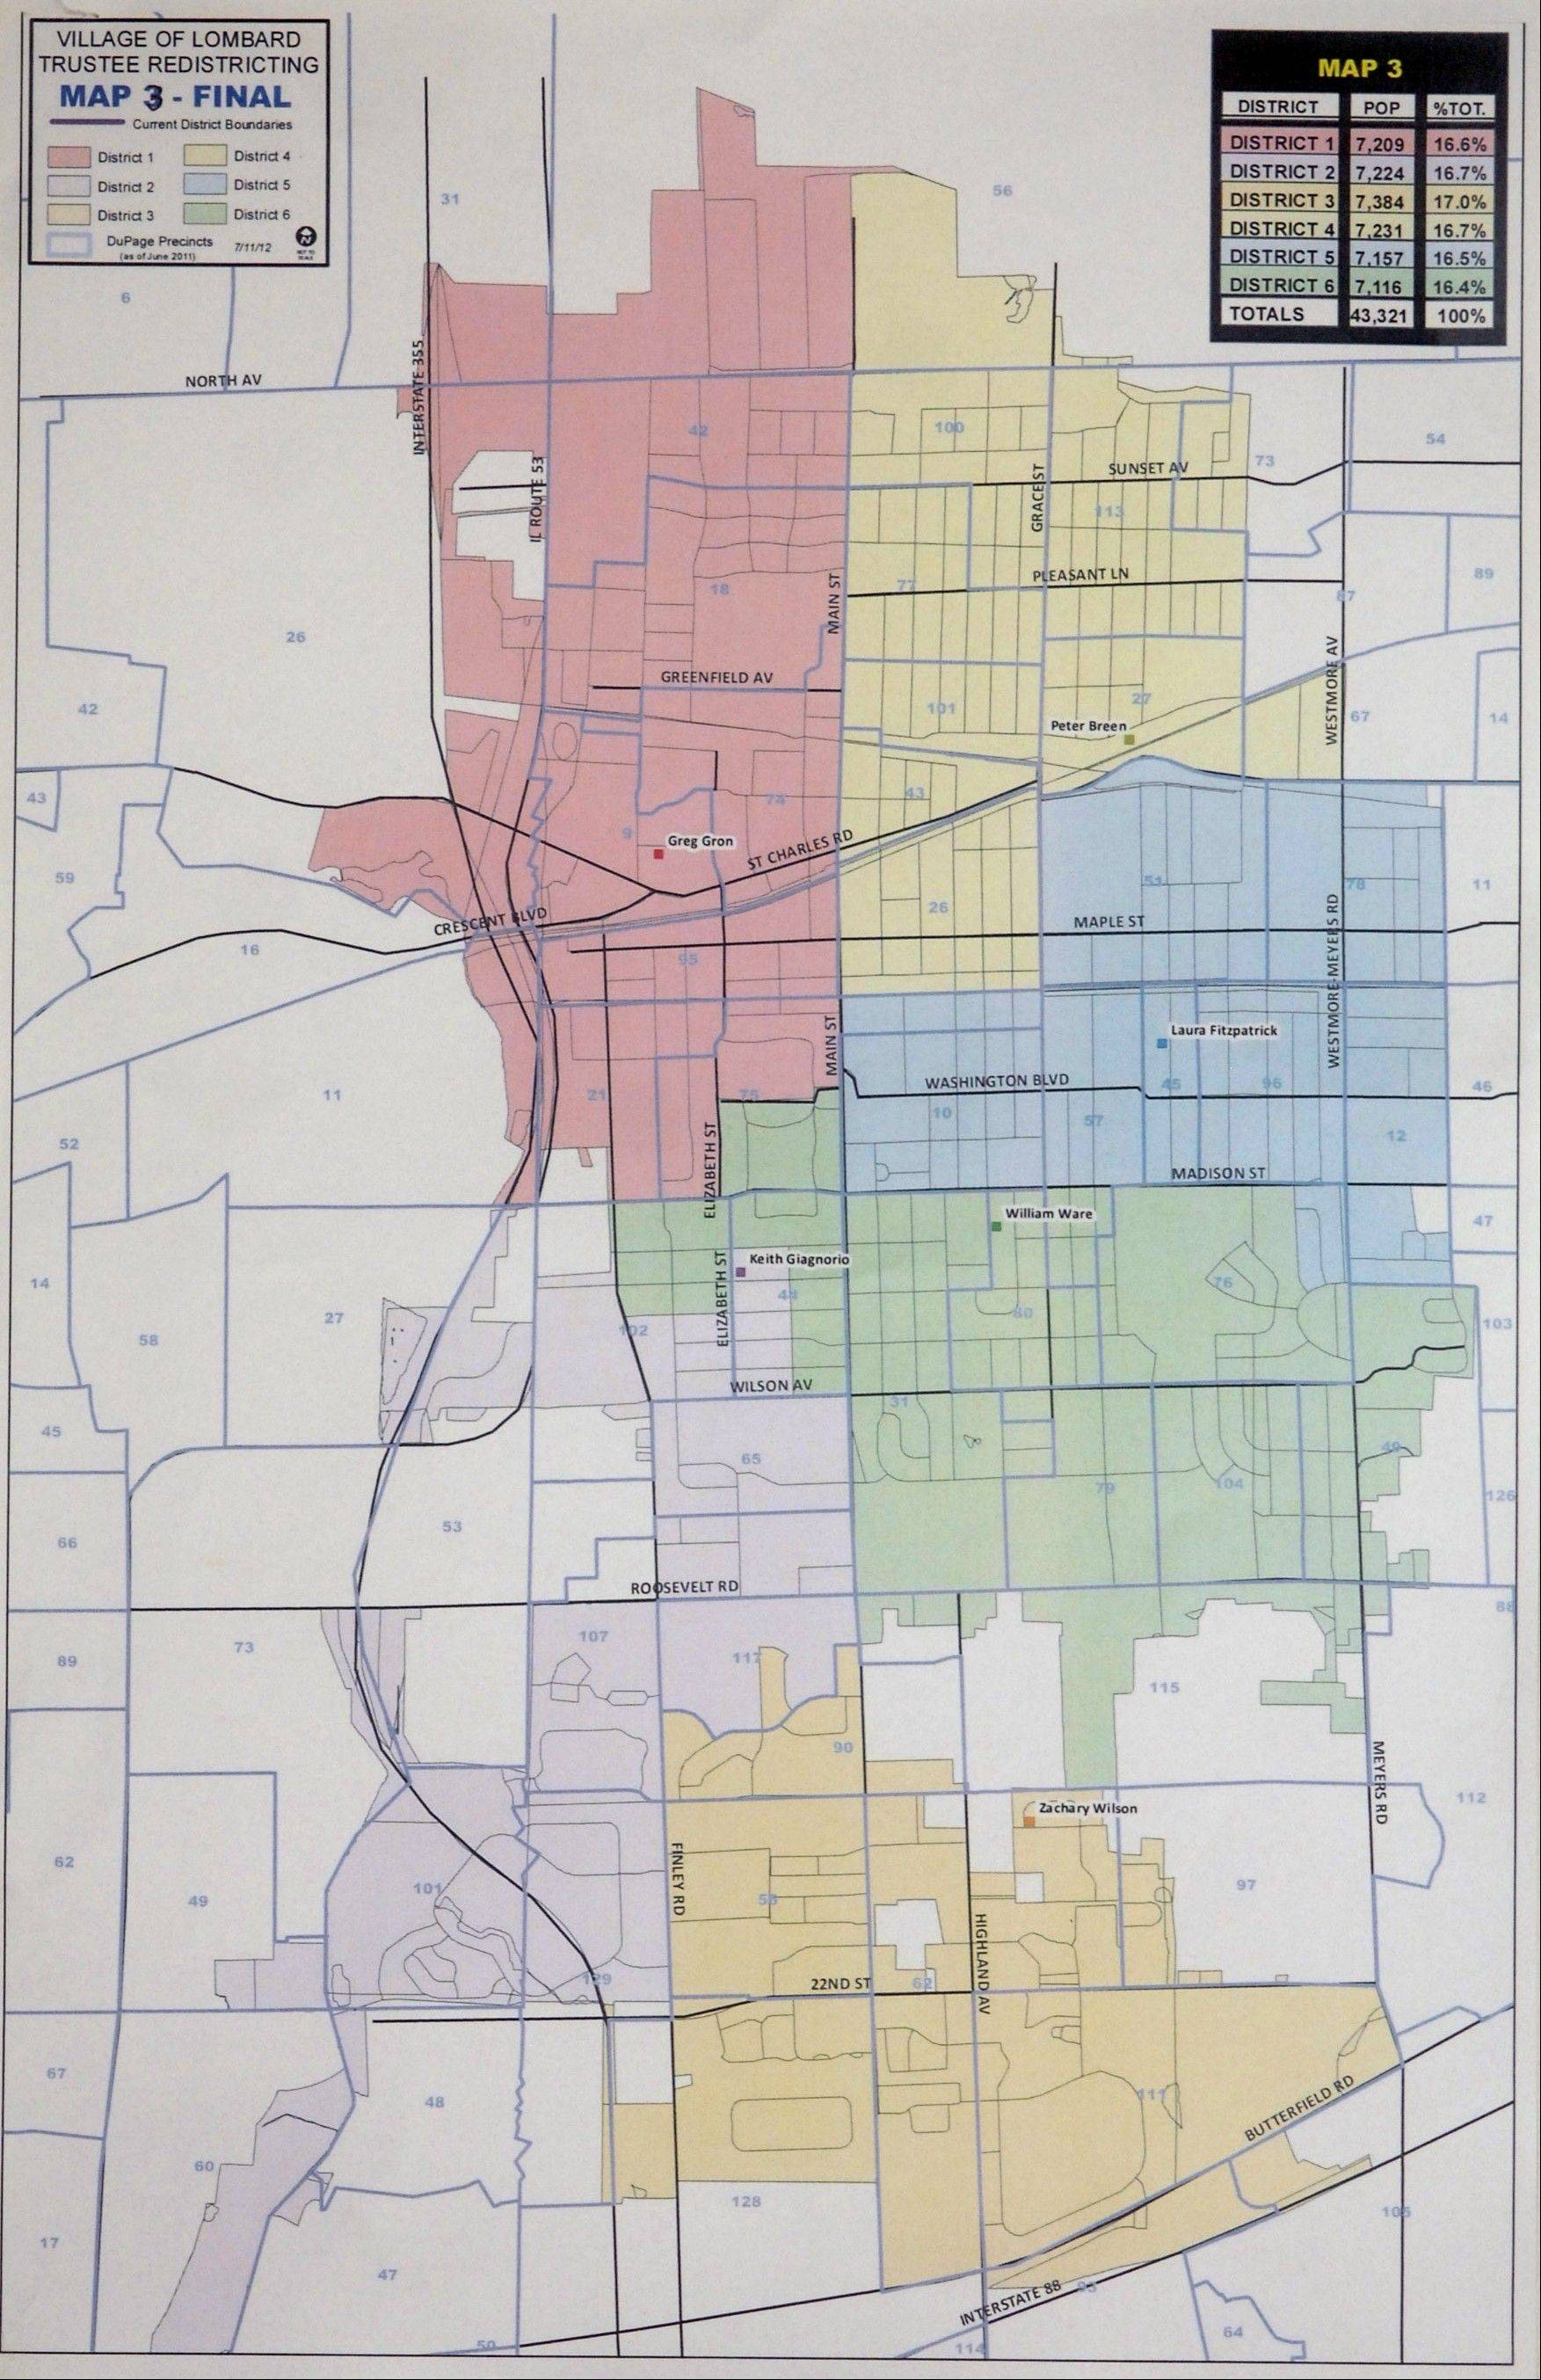 The new district map approved by Lombard trustees after a redistricting process required by the 2010 census balances the village's population while making very few boundary changes. The new map ensures each of the village's six trustees remains in his or her district.